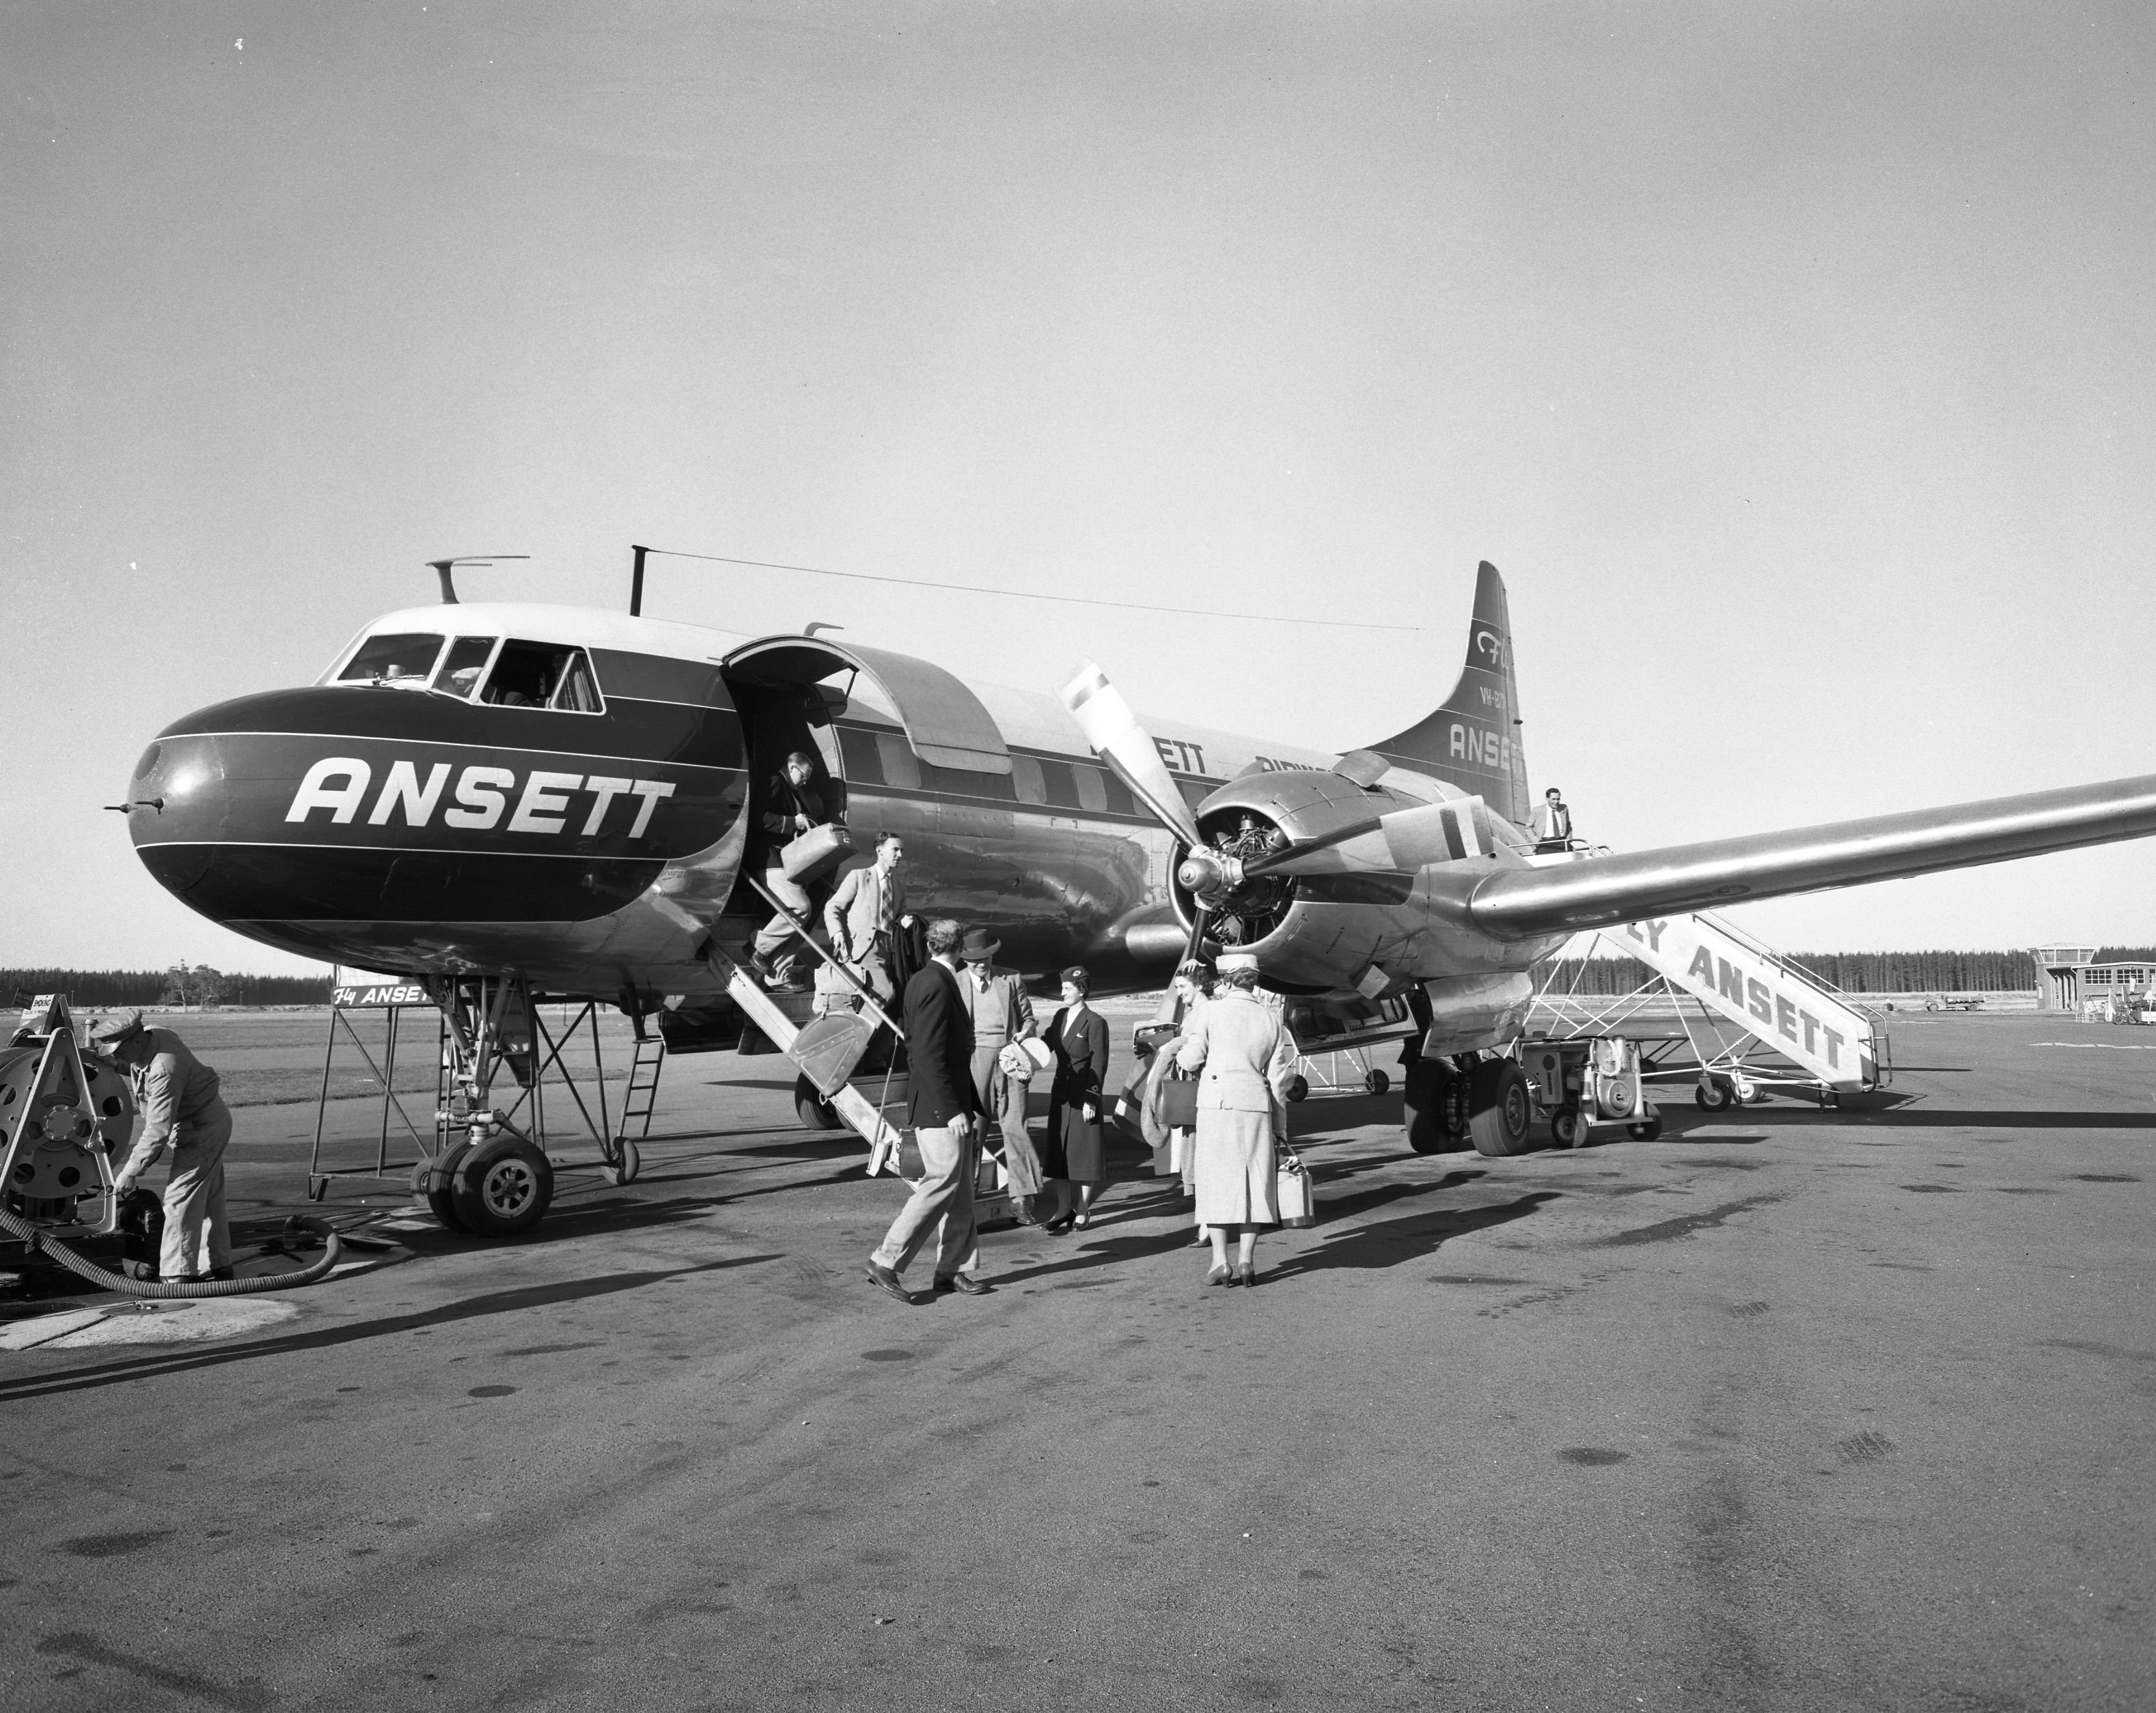 Ansett Convair CV-340 at Llanherne